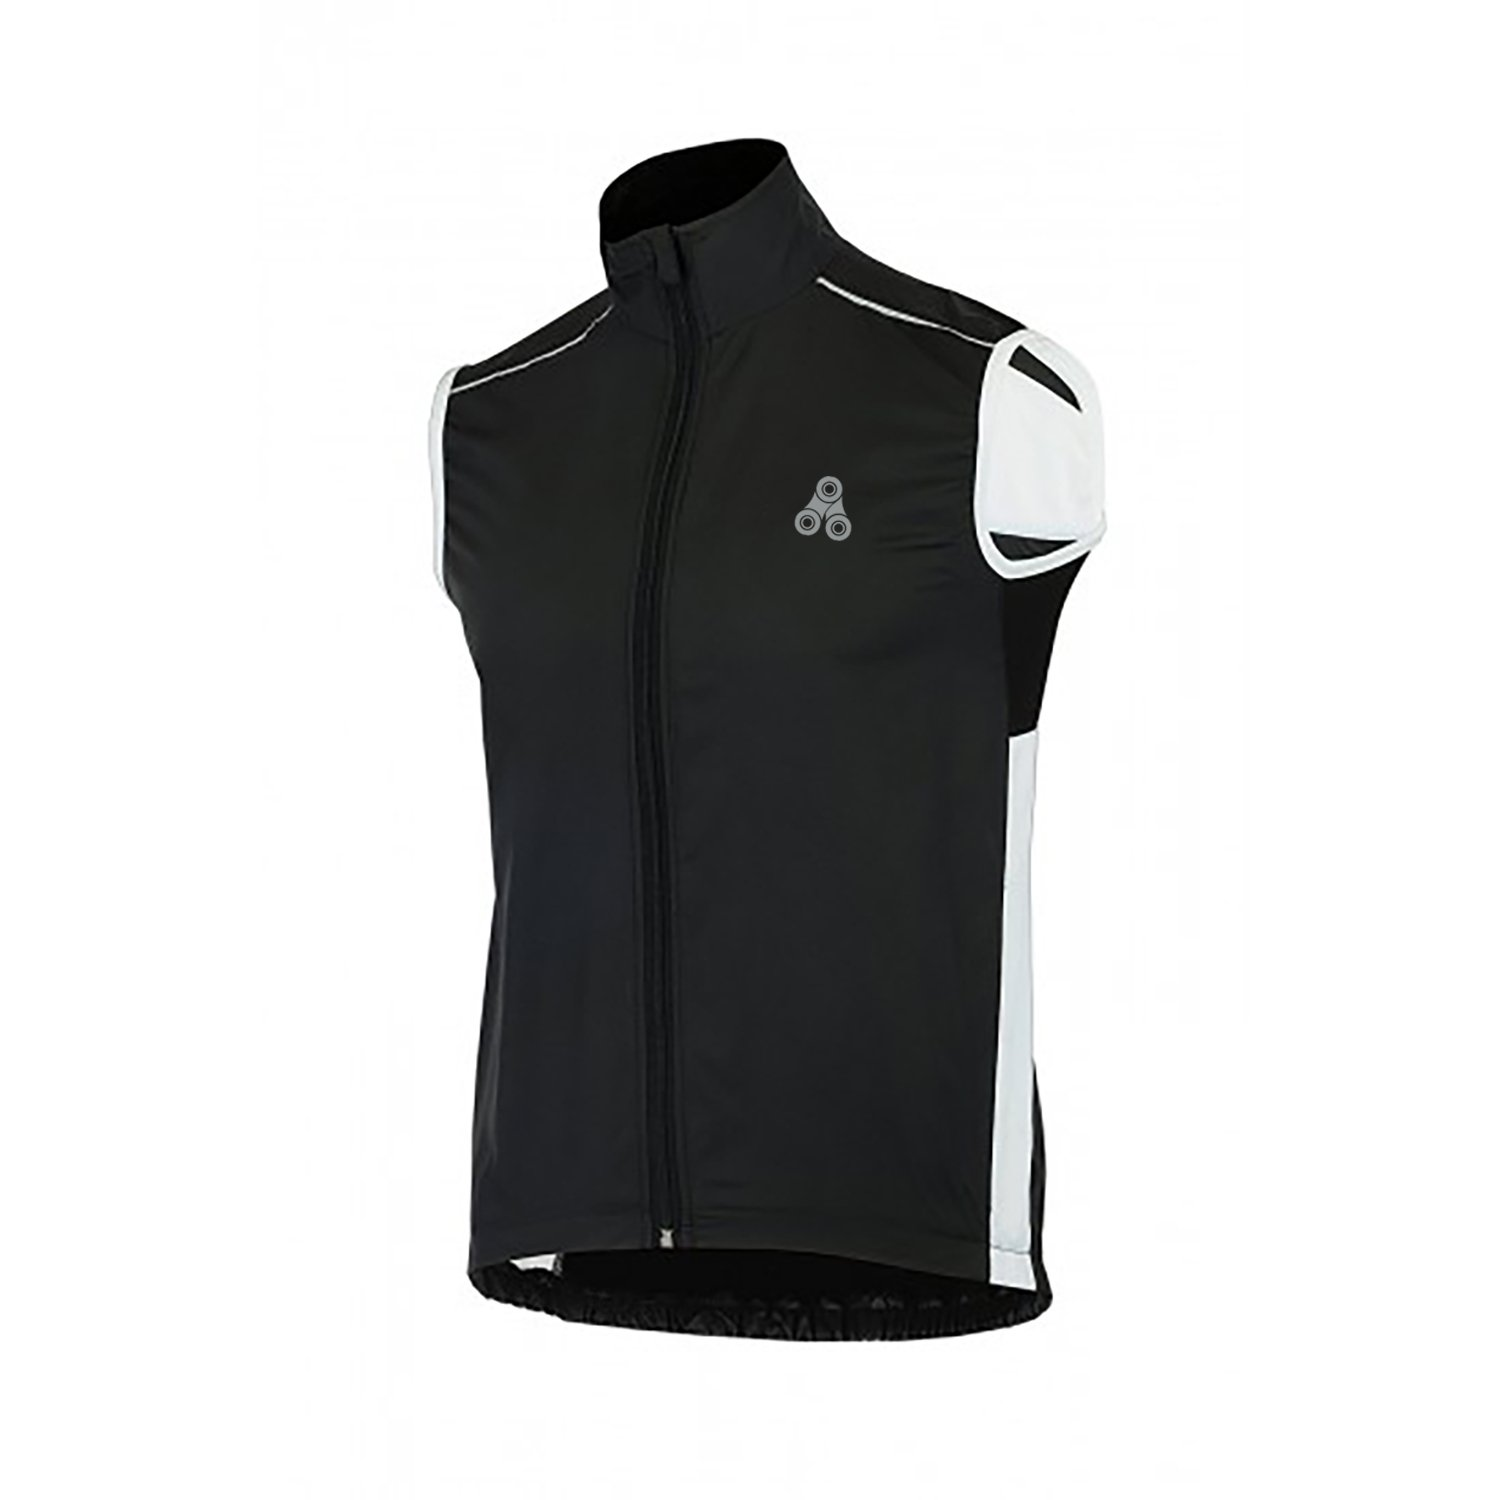 Urban Cycling Windbreaker Vest - Windproof and Reflective Sleeveless Jacket Vest Gilet for Road Cycling, MTB, or Bike Commuting